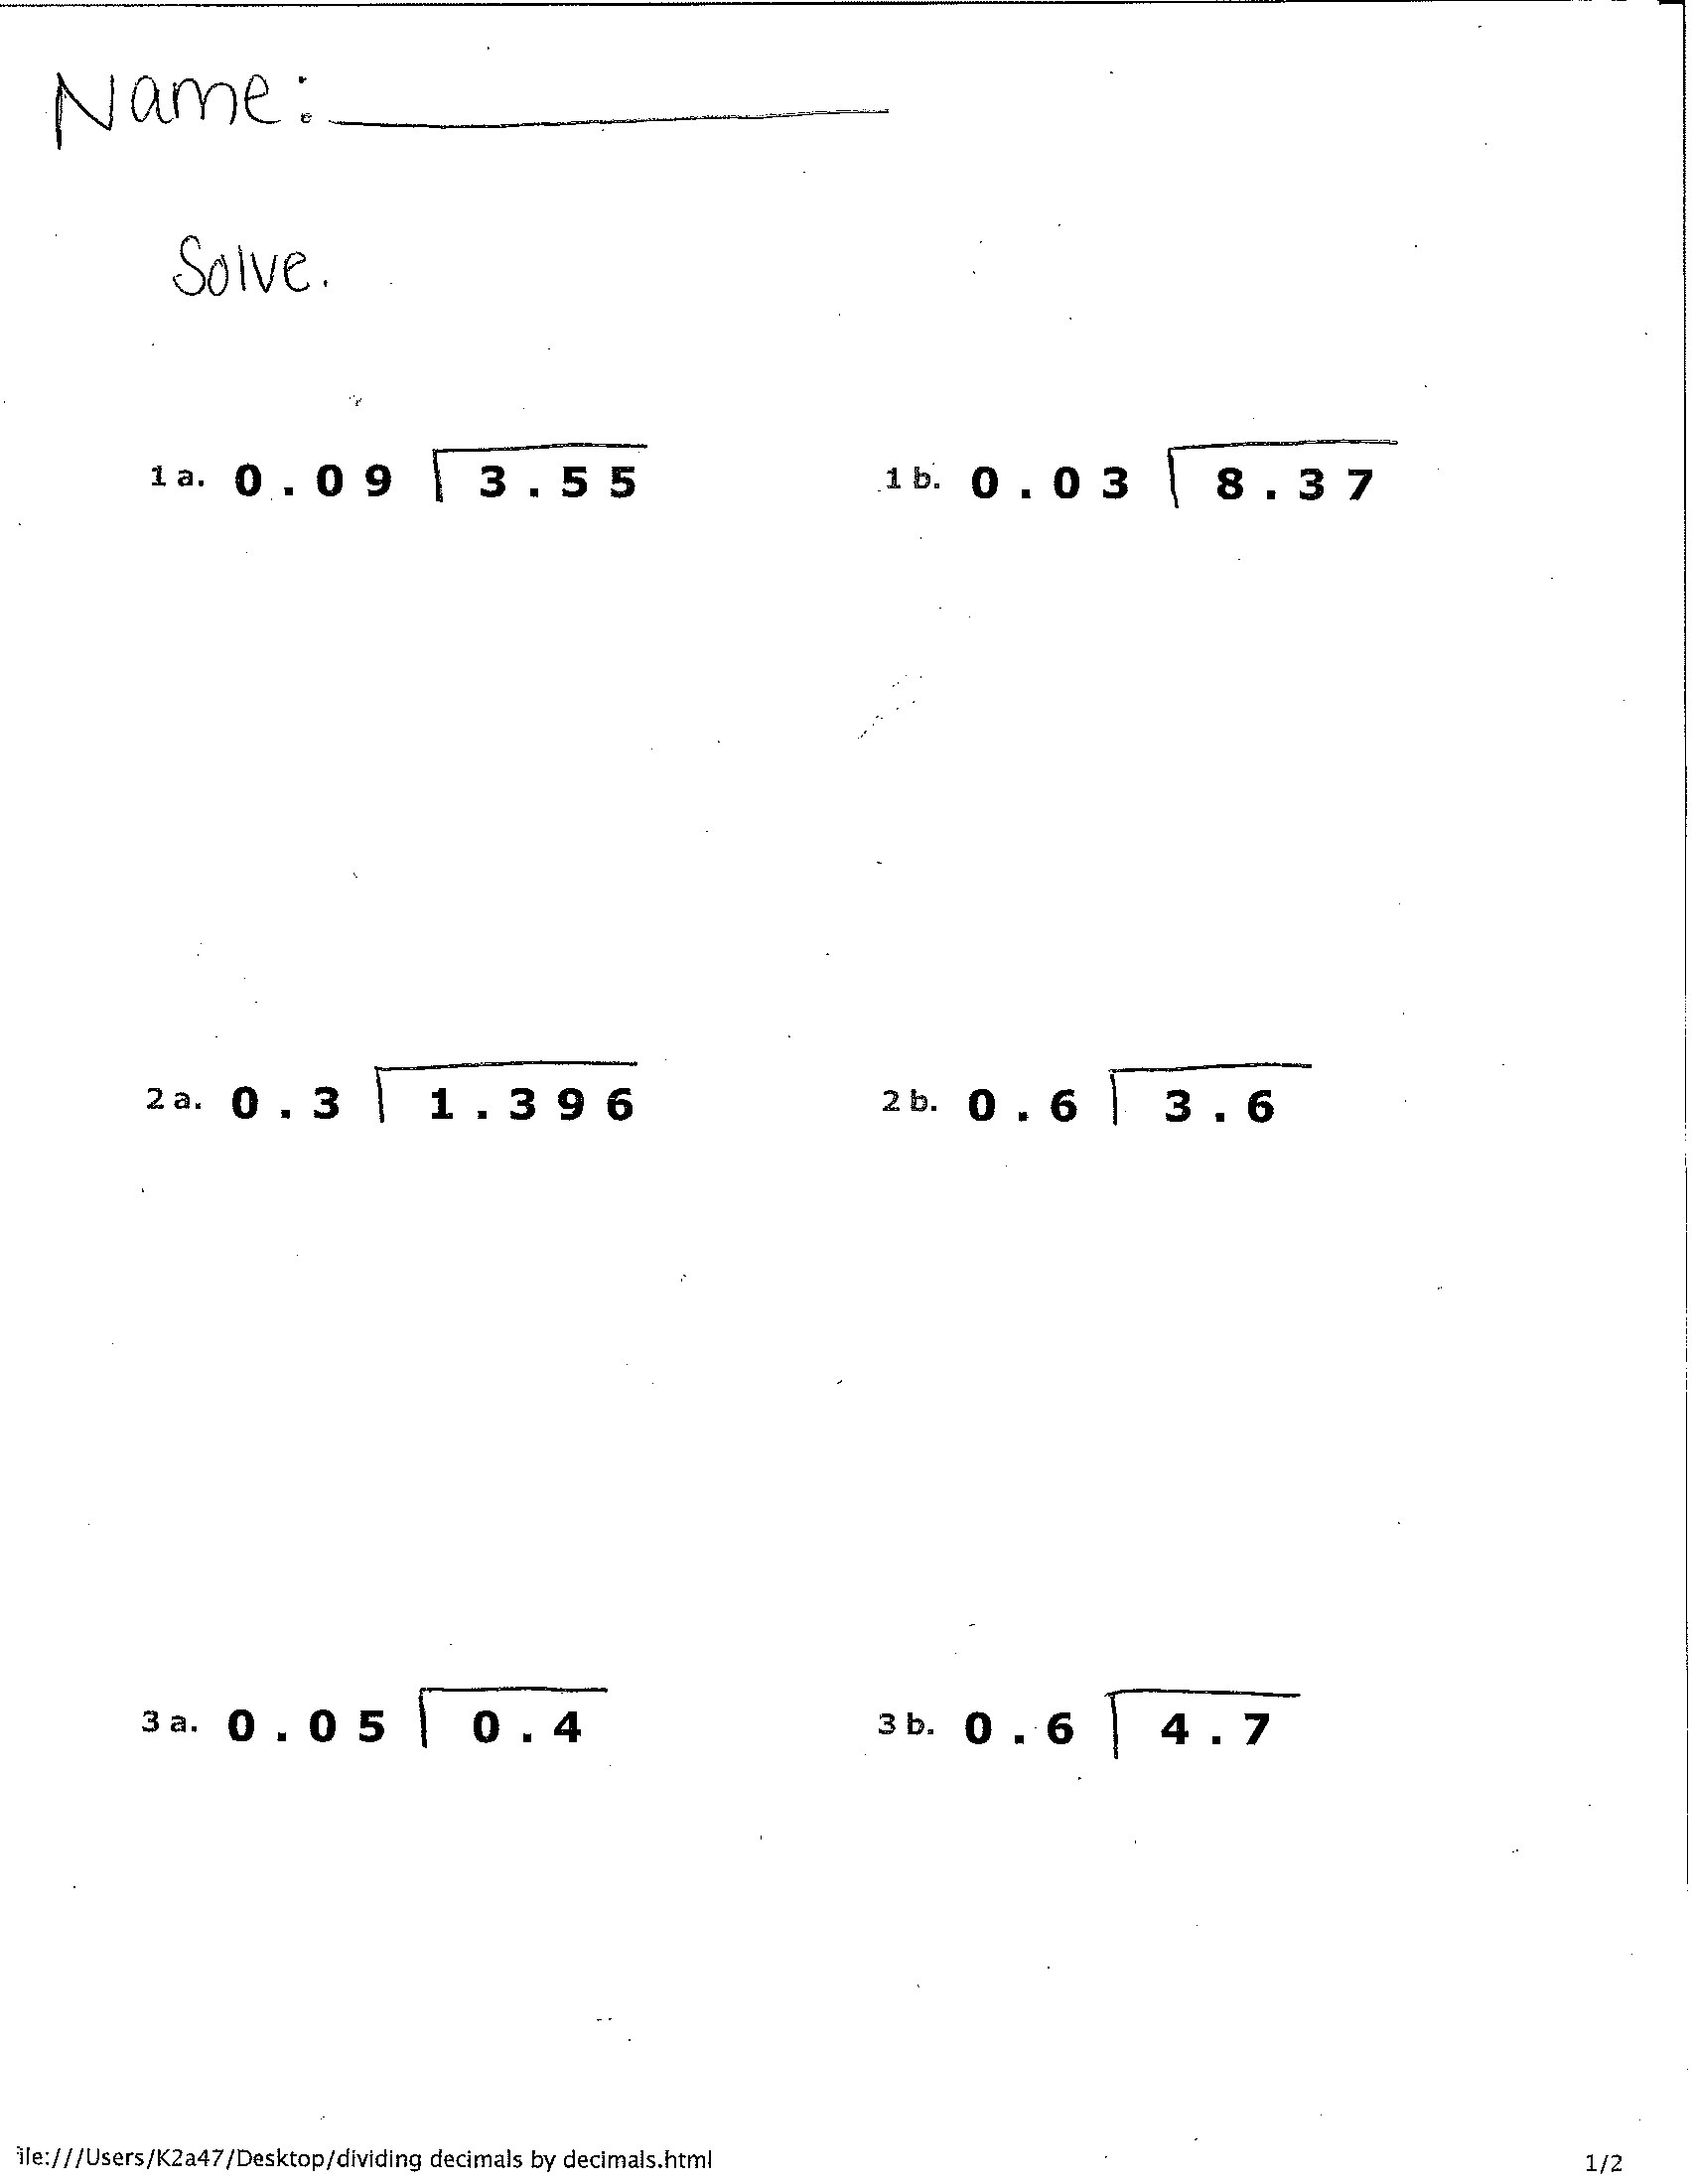 Worksheet 612792 Multiplication Decimals Worksheets Decimals – Dividing and Multiplying Decimals Worksheet